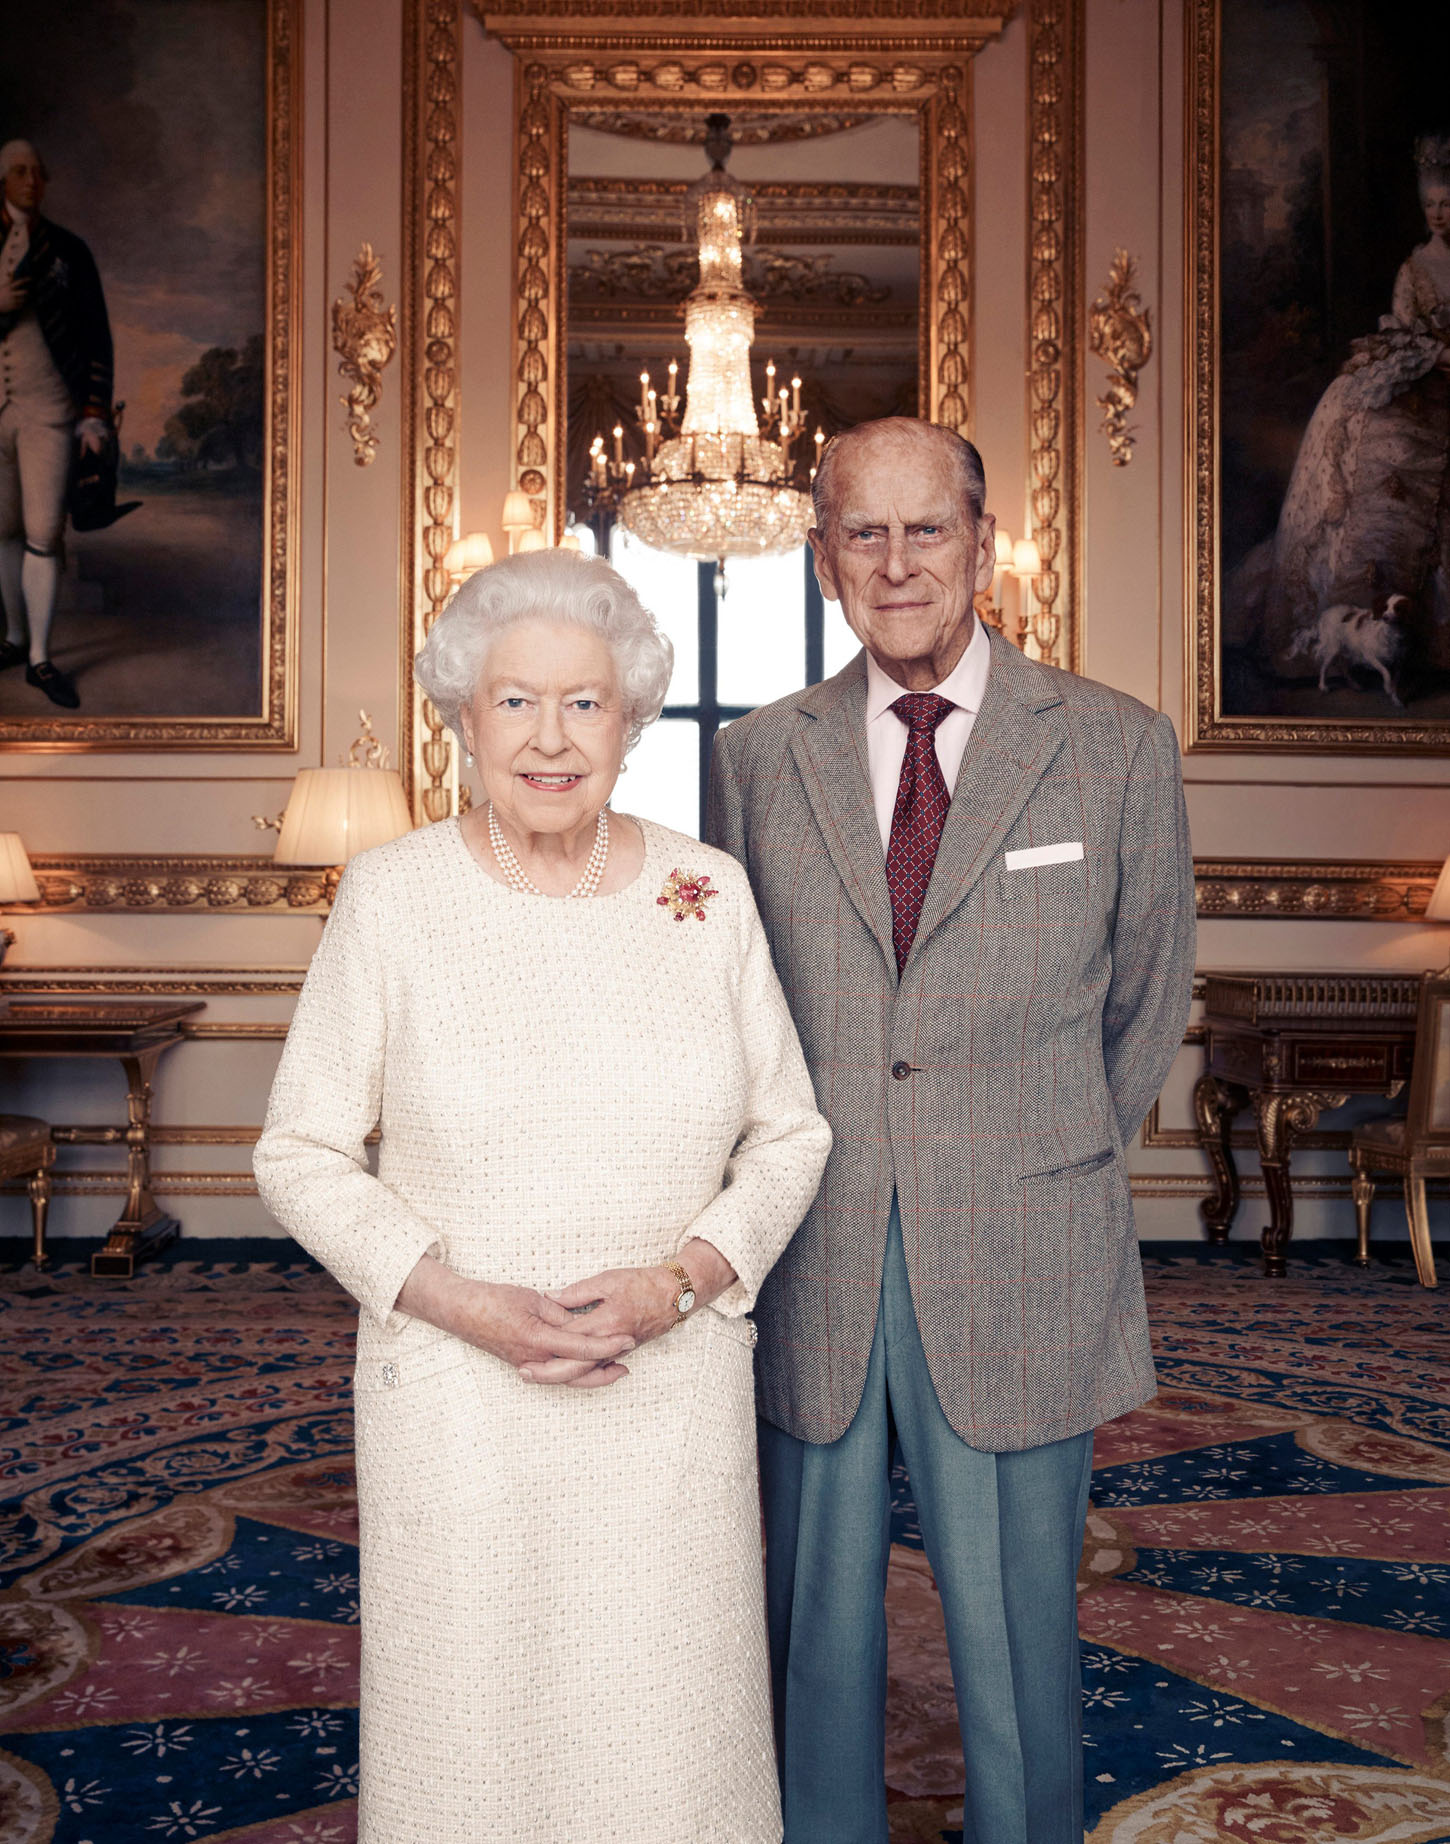 Handout photo issued November 18, 2017 by Camera Press of Britain's Queen Elizabeth II and Prince Philip, Duke of Edinburgh, taken in the White Drawing Room at Windsor Castle in early November, in celebration of their platinum wedding anniversary on November 20. Matt Holyoak/CameraPress/PA Wire/Handout via REUTERS      MANDATORY CREDIT. FREE EDITORIAL USE UNTIL DECEMBER 3RD. FOR EDITORIAL USE ONLY, NO COMMERCIAL, SOUVENIR, COVERS OR PROMOTIONAL USE PERMITTED. THE PHOTOGRAPH CANNOT BE CROPPED, MANIPULATED OR ALTERED IN ANY WAY. THIS PICTURE WAS PROVIDED BY A THIRD PARTY. NO RESALES. NO ARCHIVE.